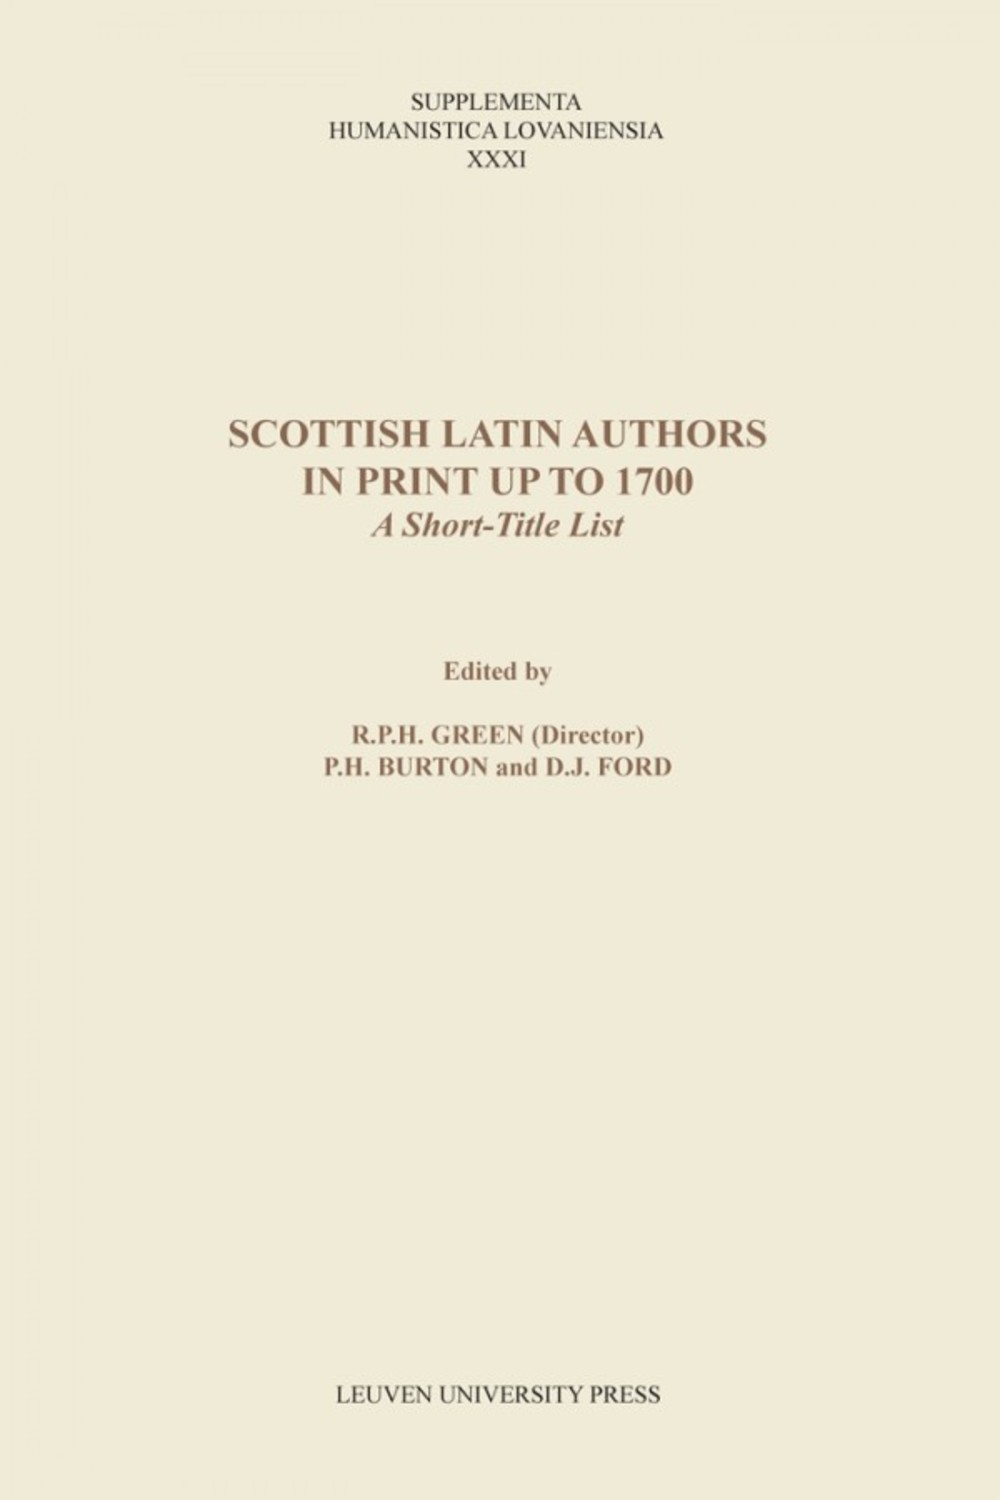 Scottish Latin Authors in Print up to 1700